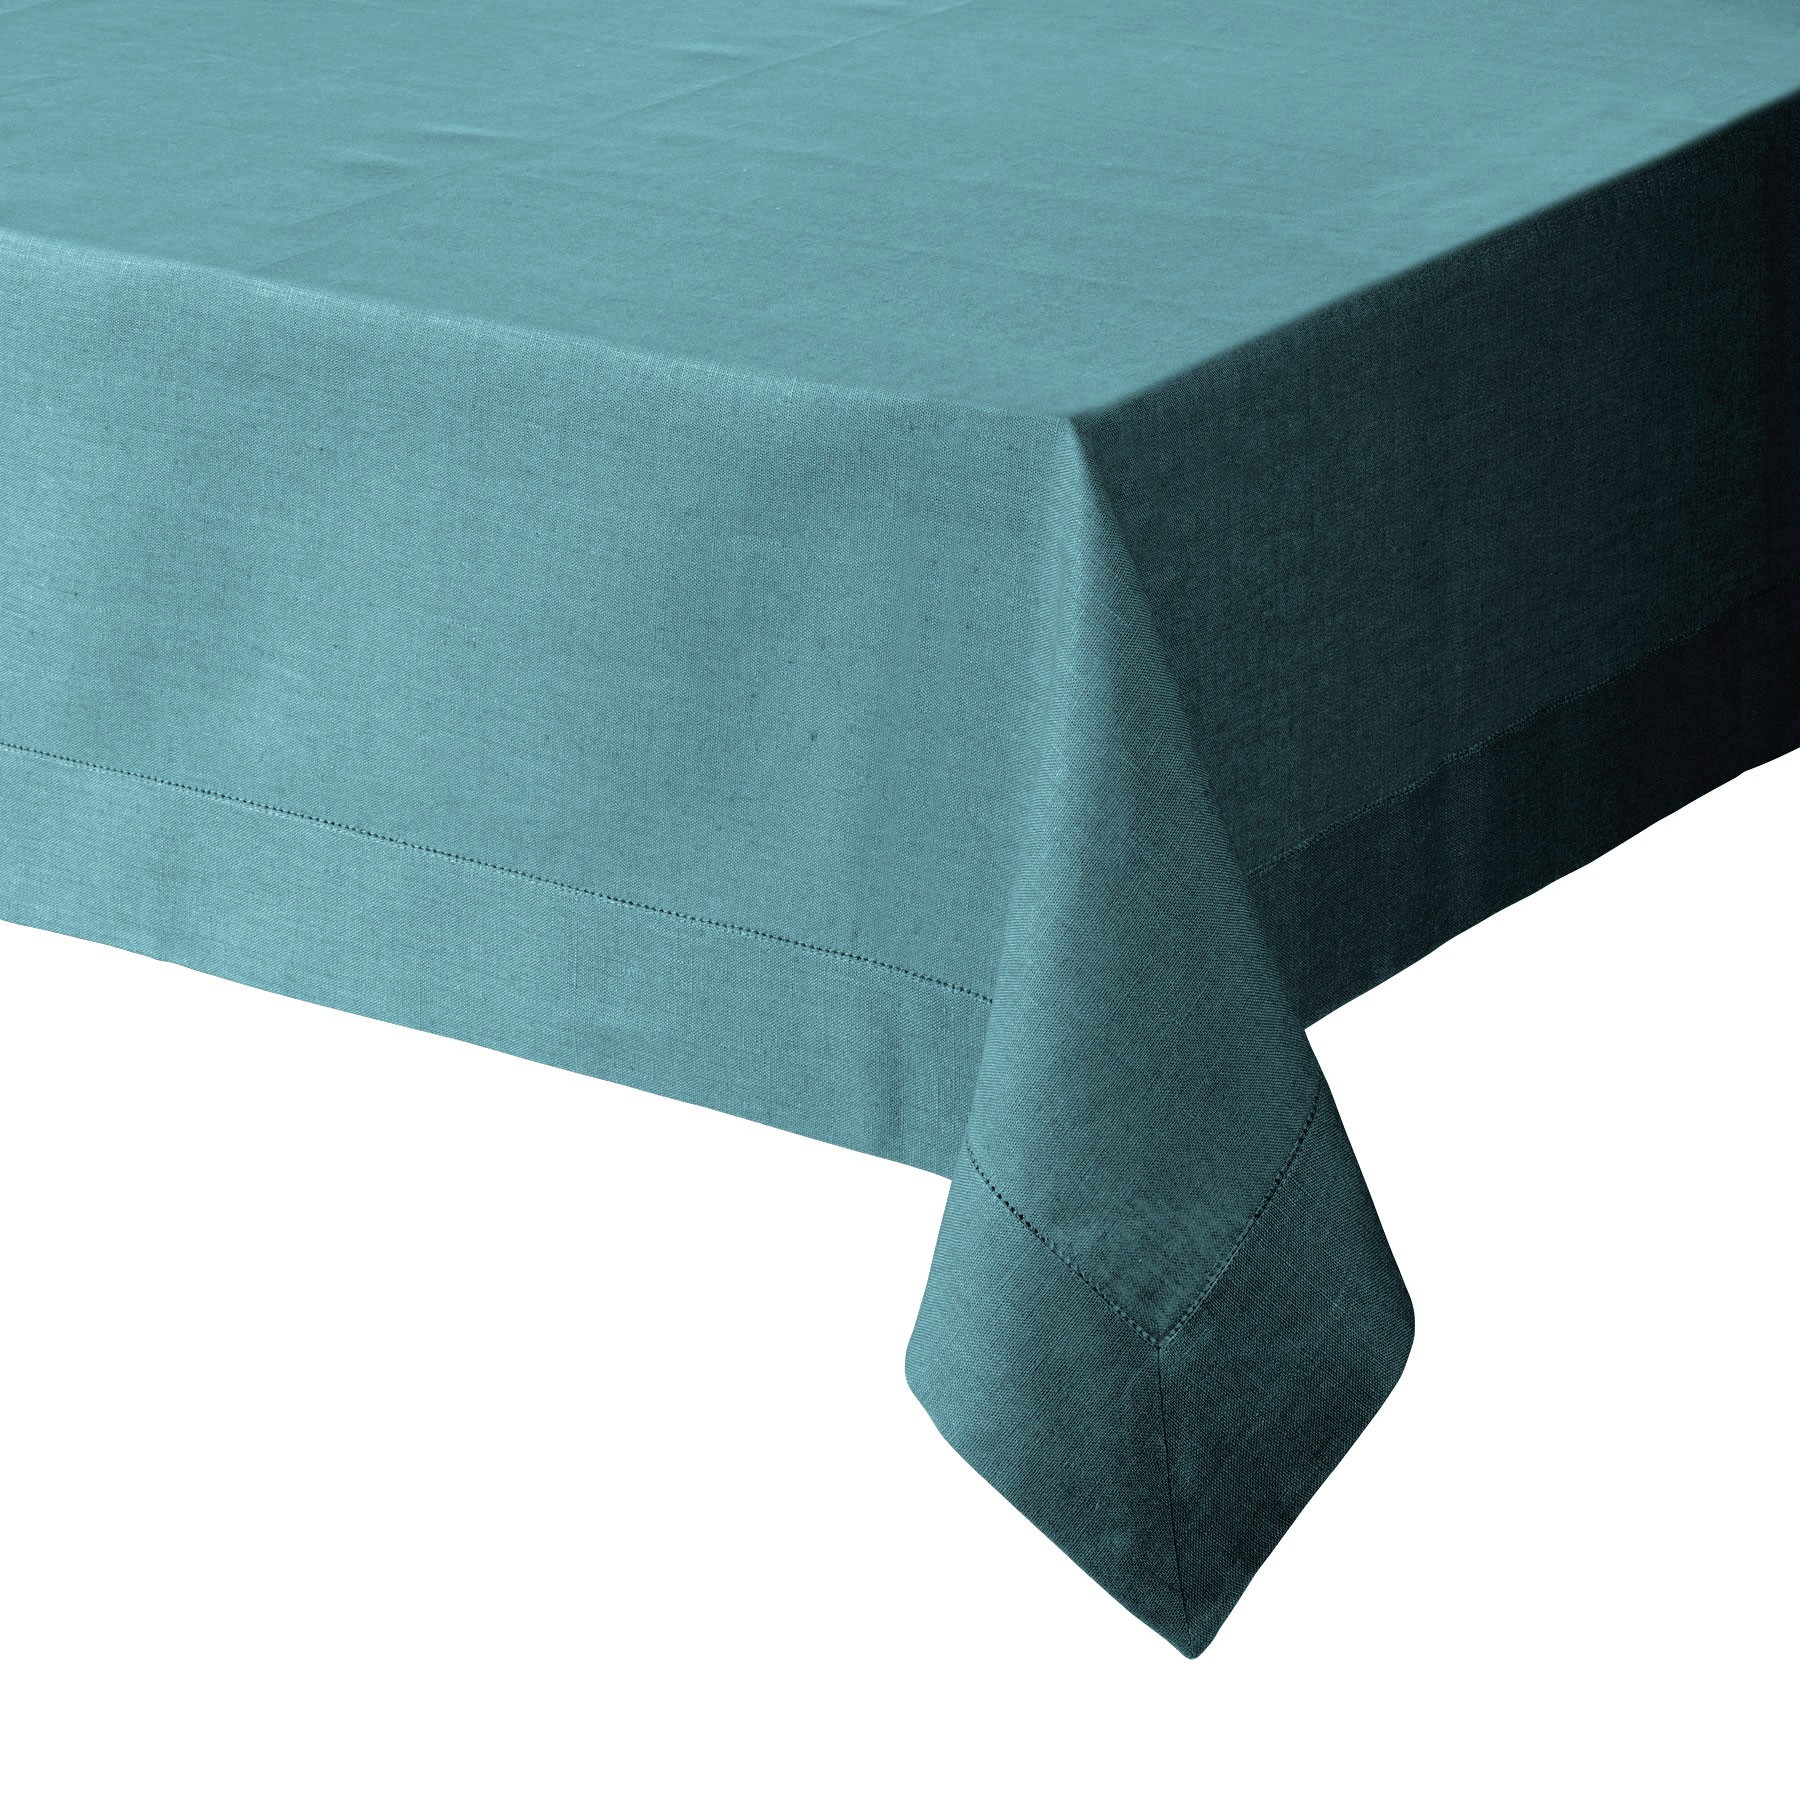 TABLECLOTH <br />niagara blue